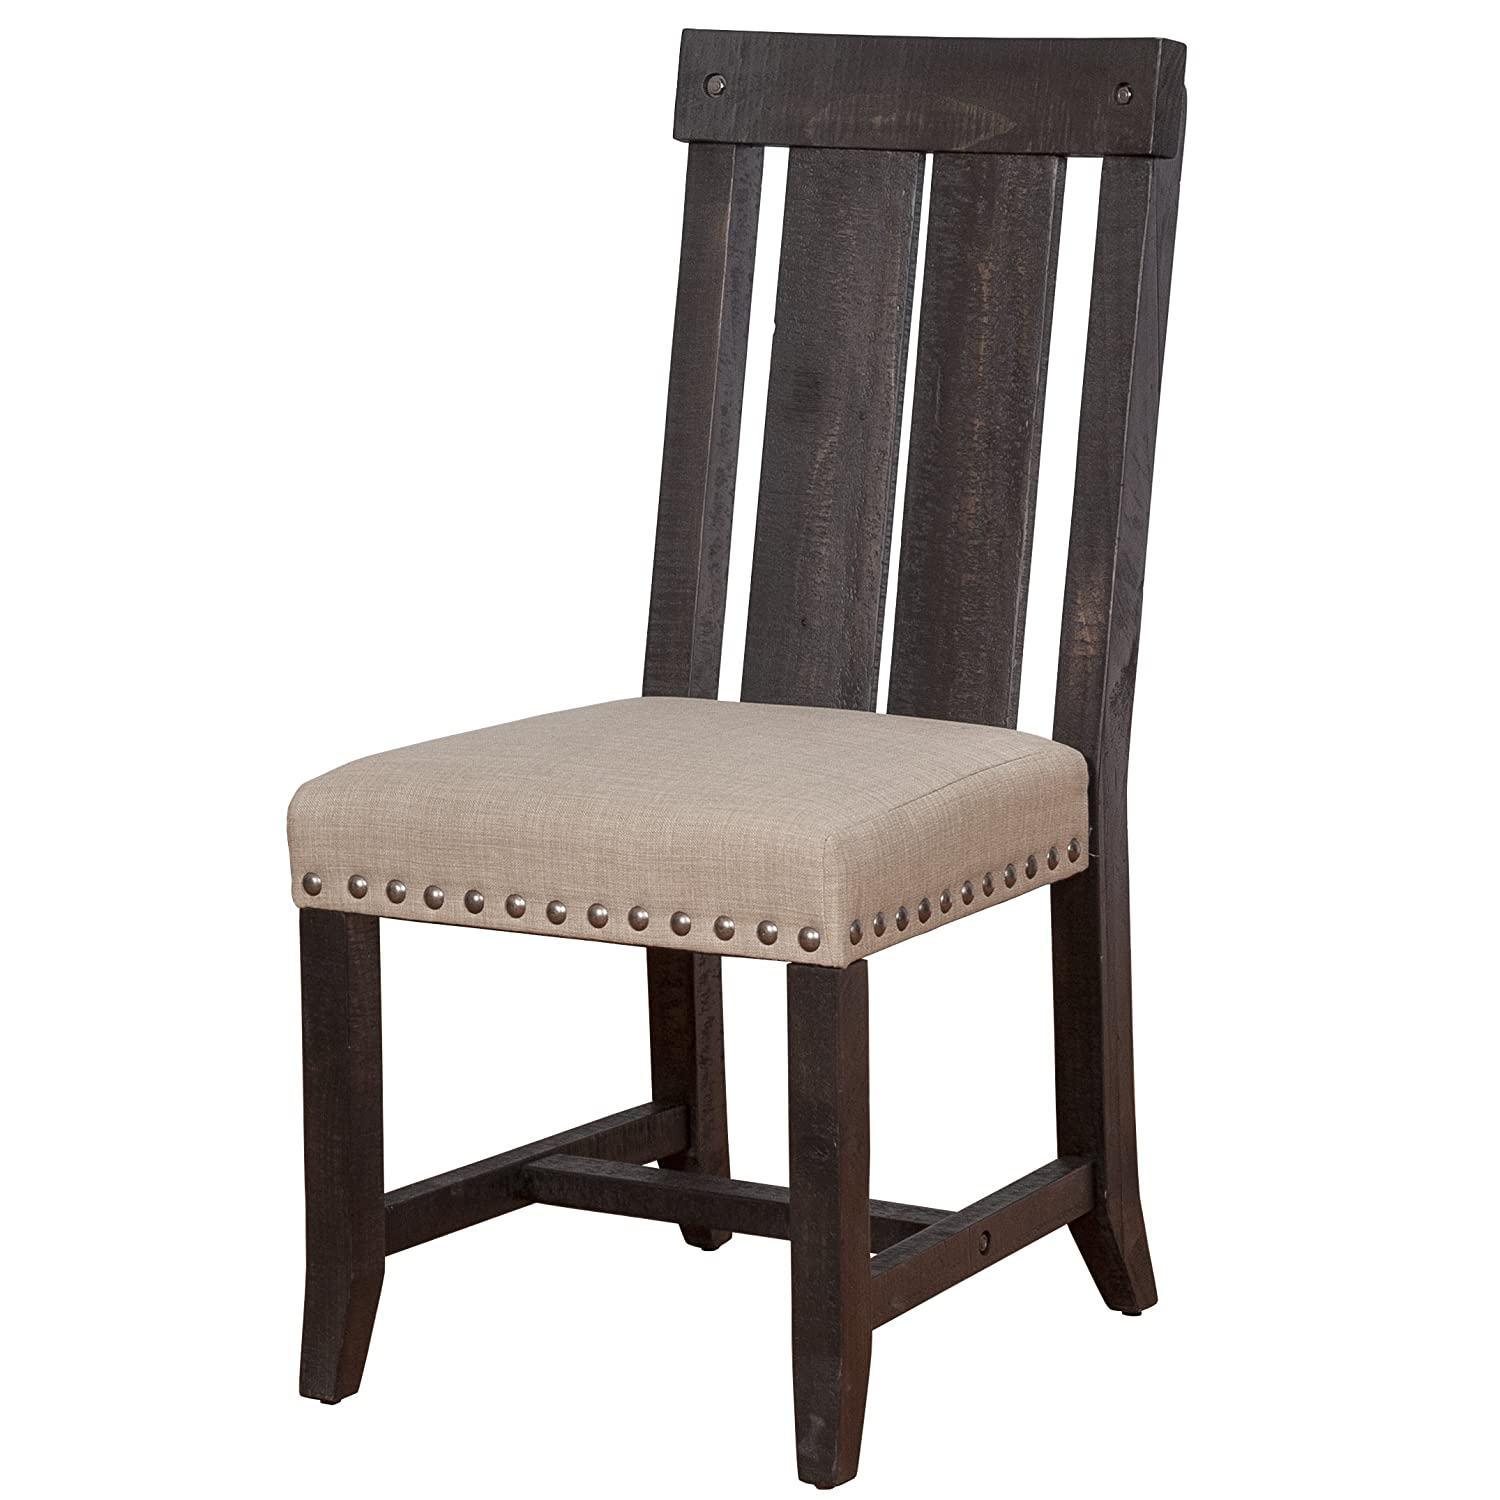 Modus Furniture 7YC966W Yosemite Solid Wood Dining Chair - Black Pine - 2-Pack